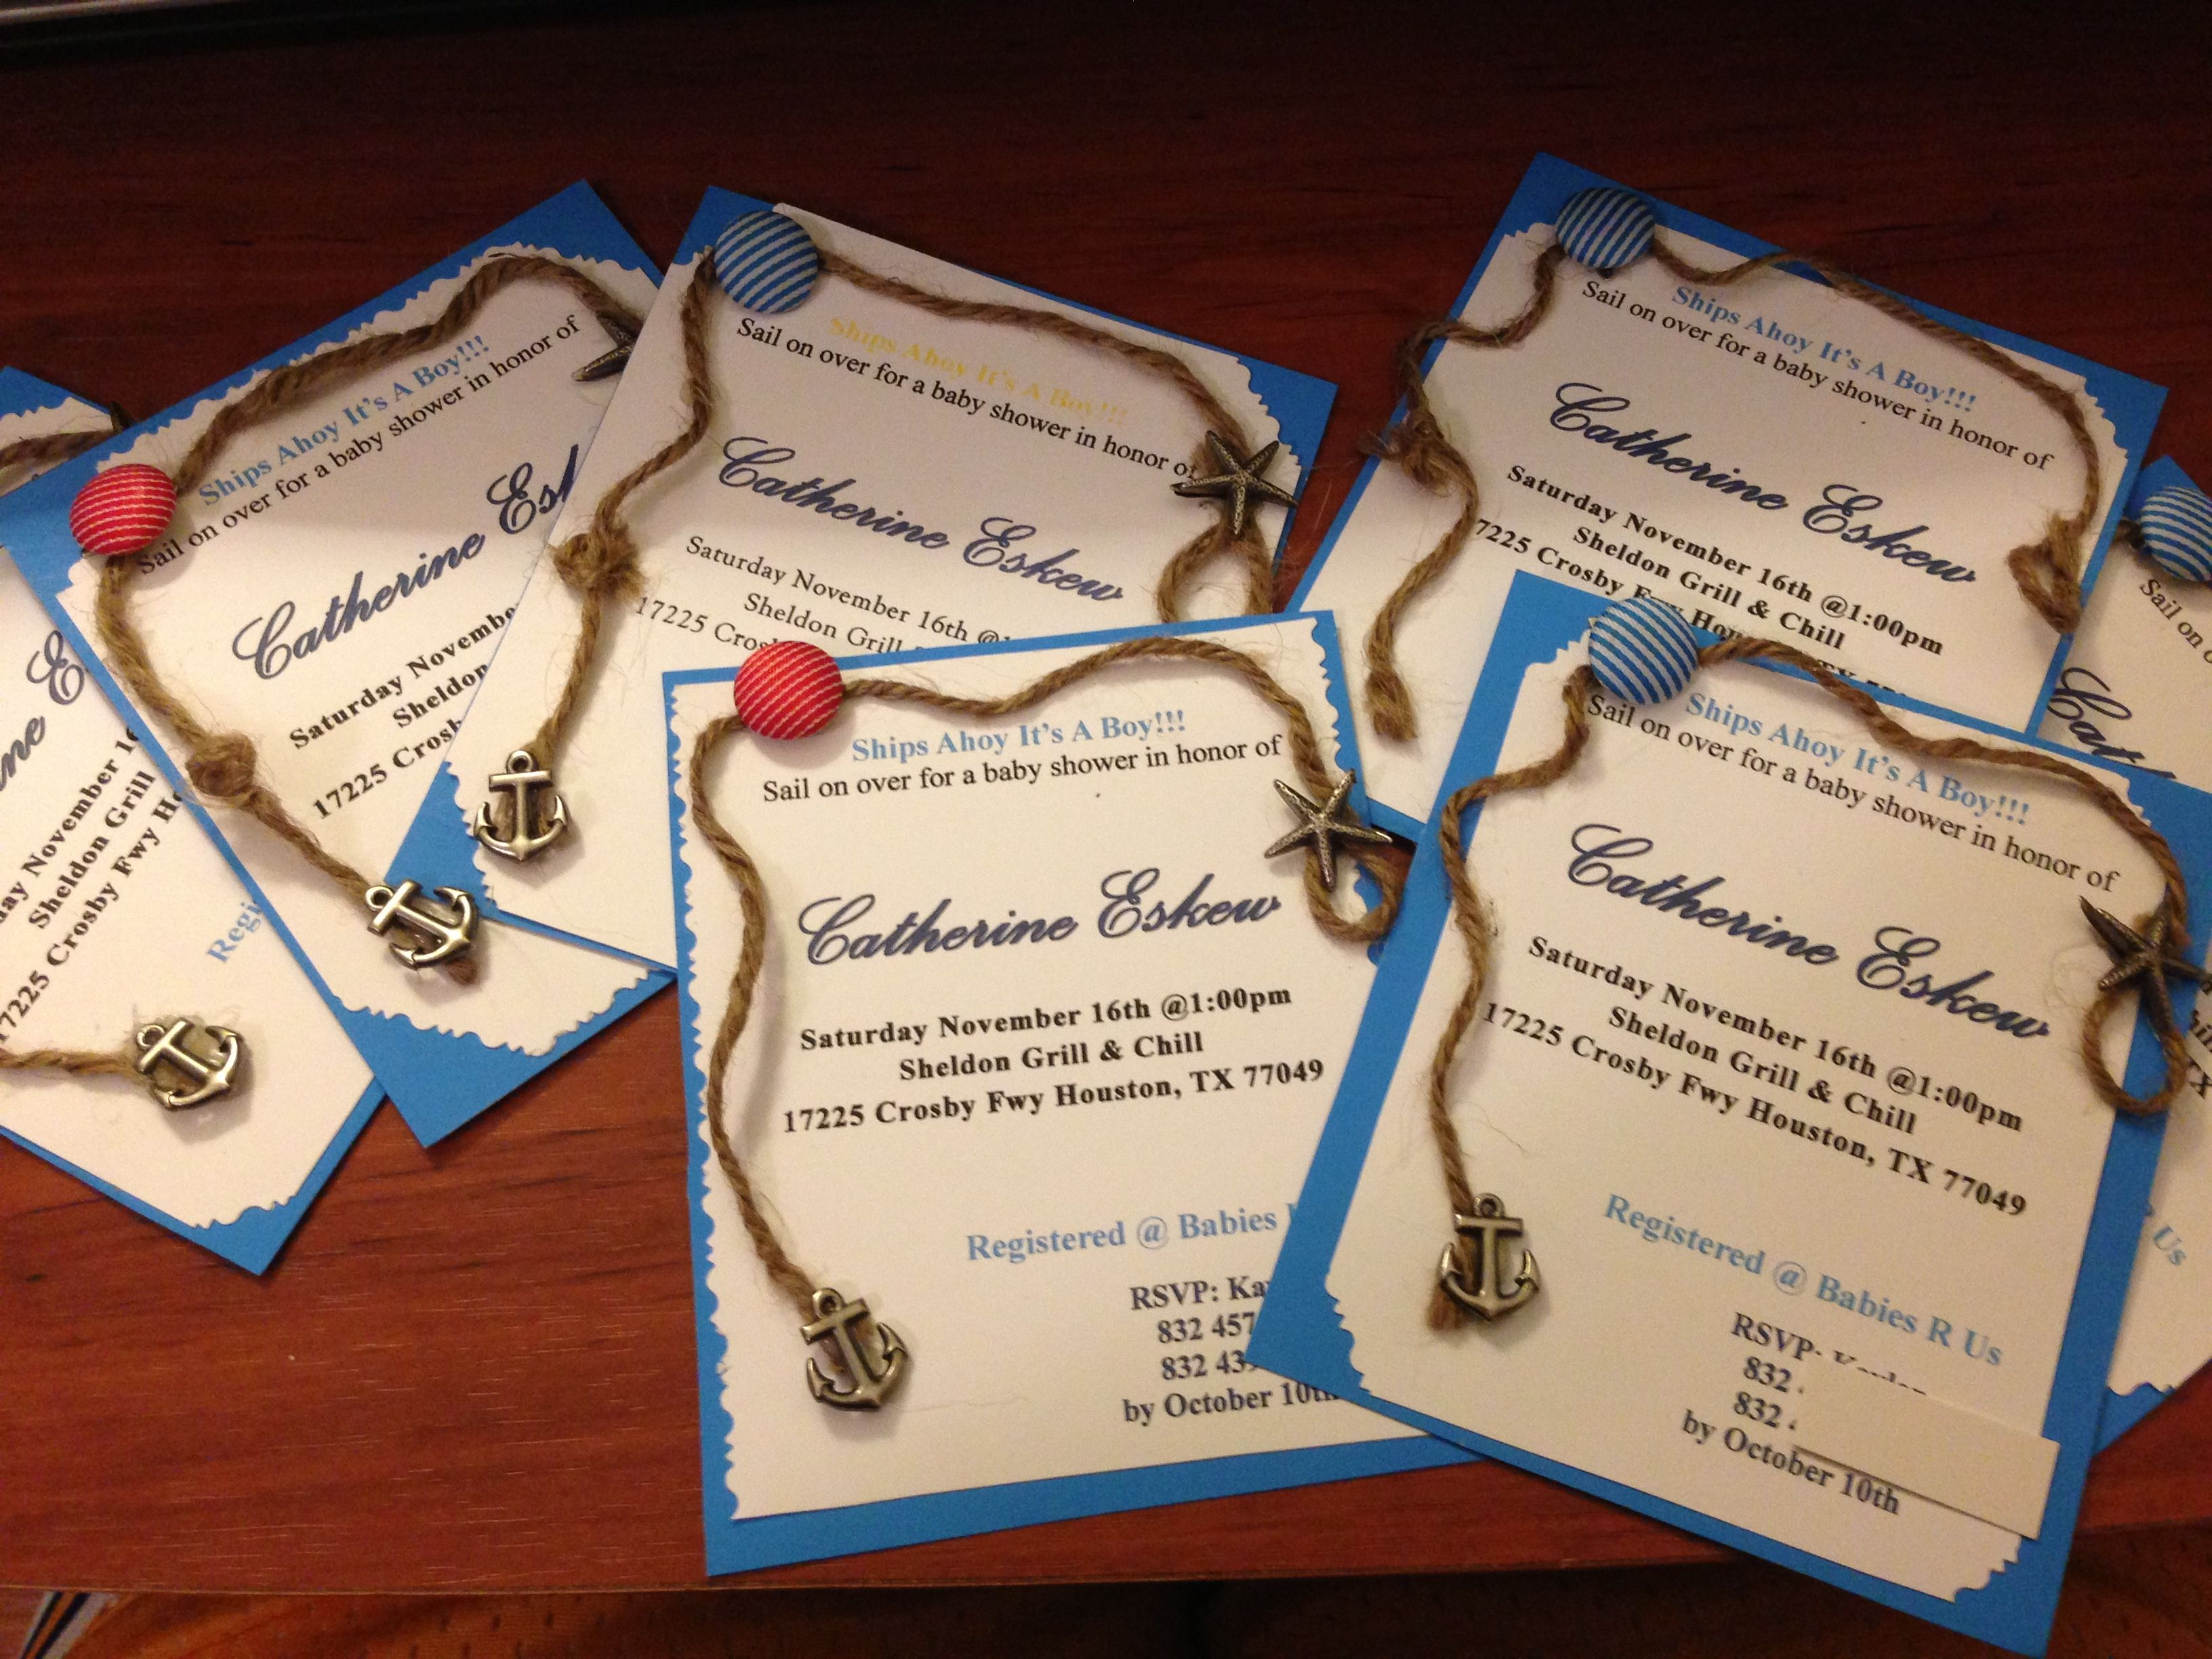 Homemade nautical baby shower invitations diy nautical baby homemade nautical baby shower invitations diy nautical filmwisefo